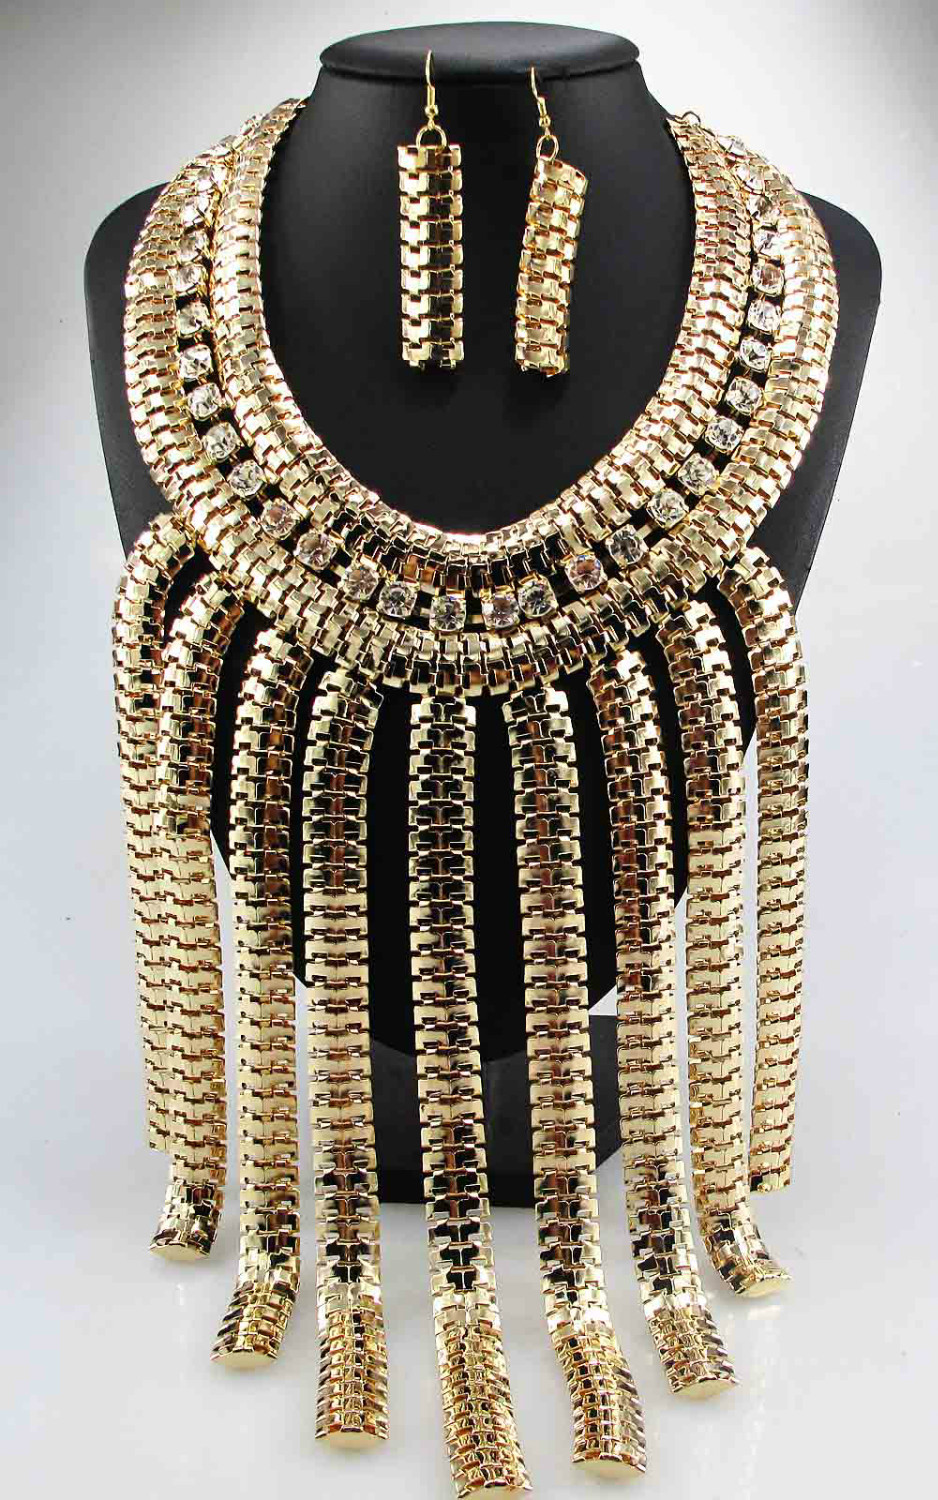 Newest Gorgeous Fashion 9k GF Necklace Jewelry crystal ra Department Statement Necklace Women Choker Necklaces Pendants(China (Mainland))